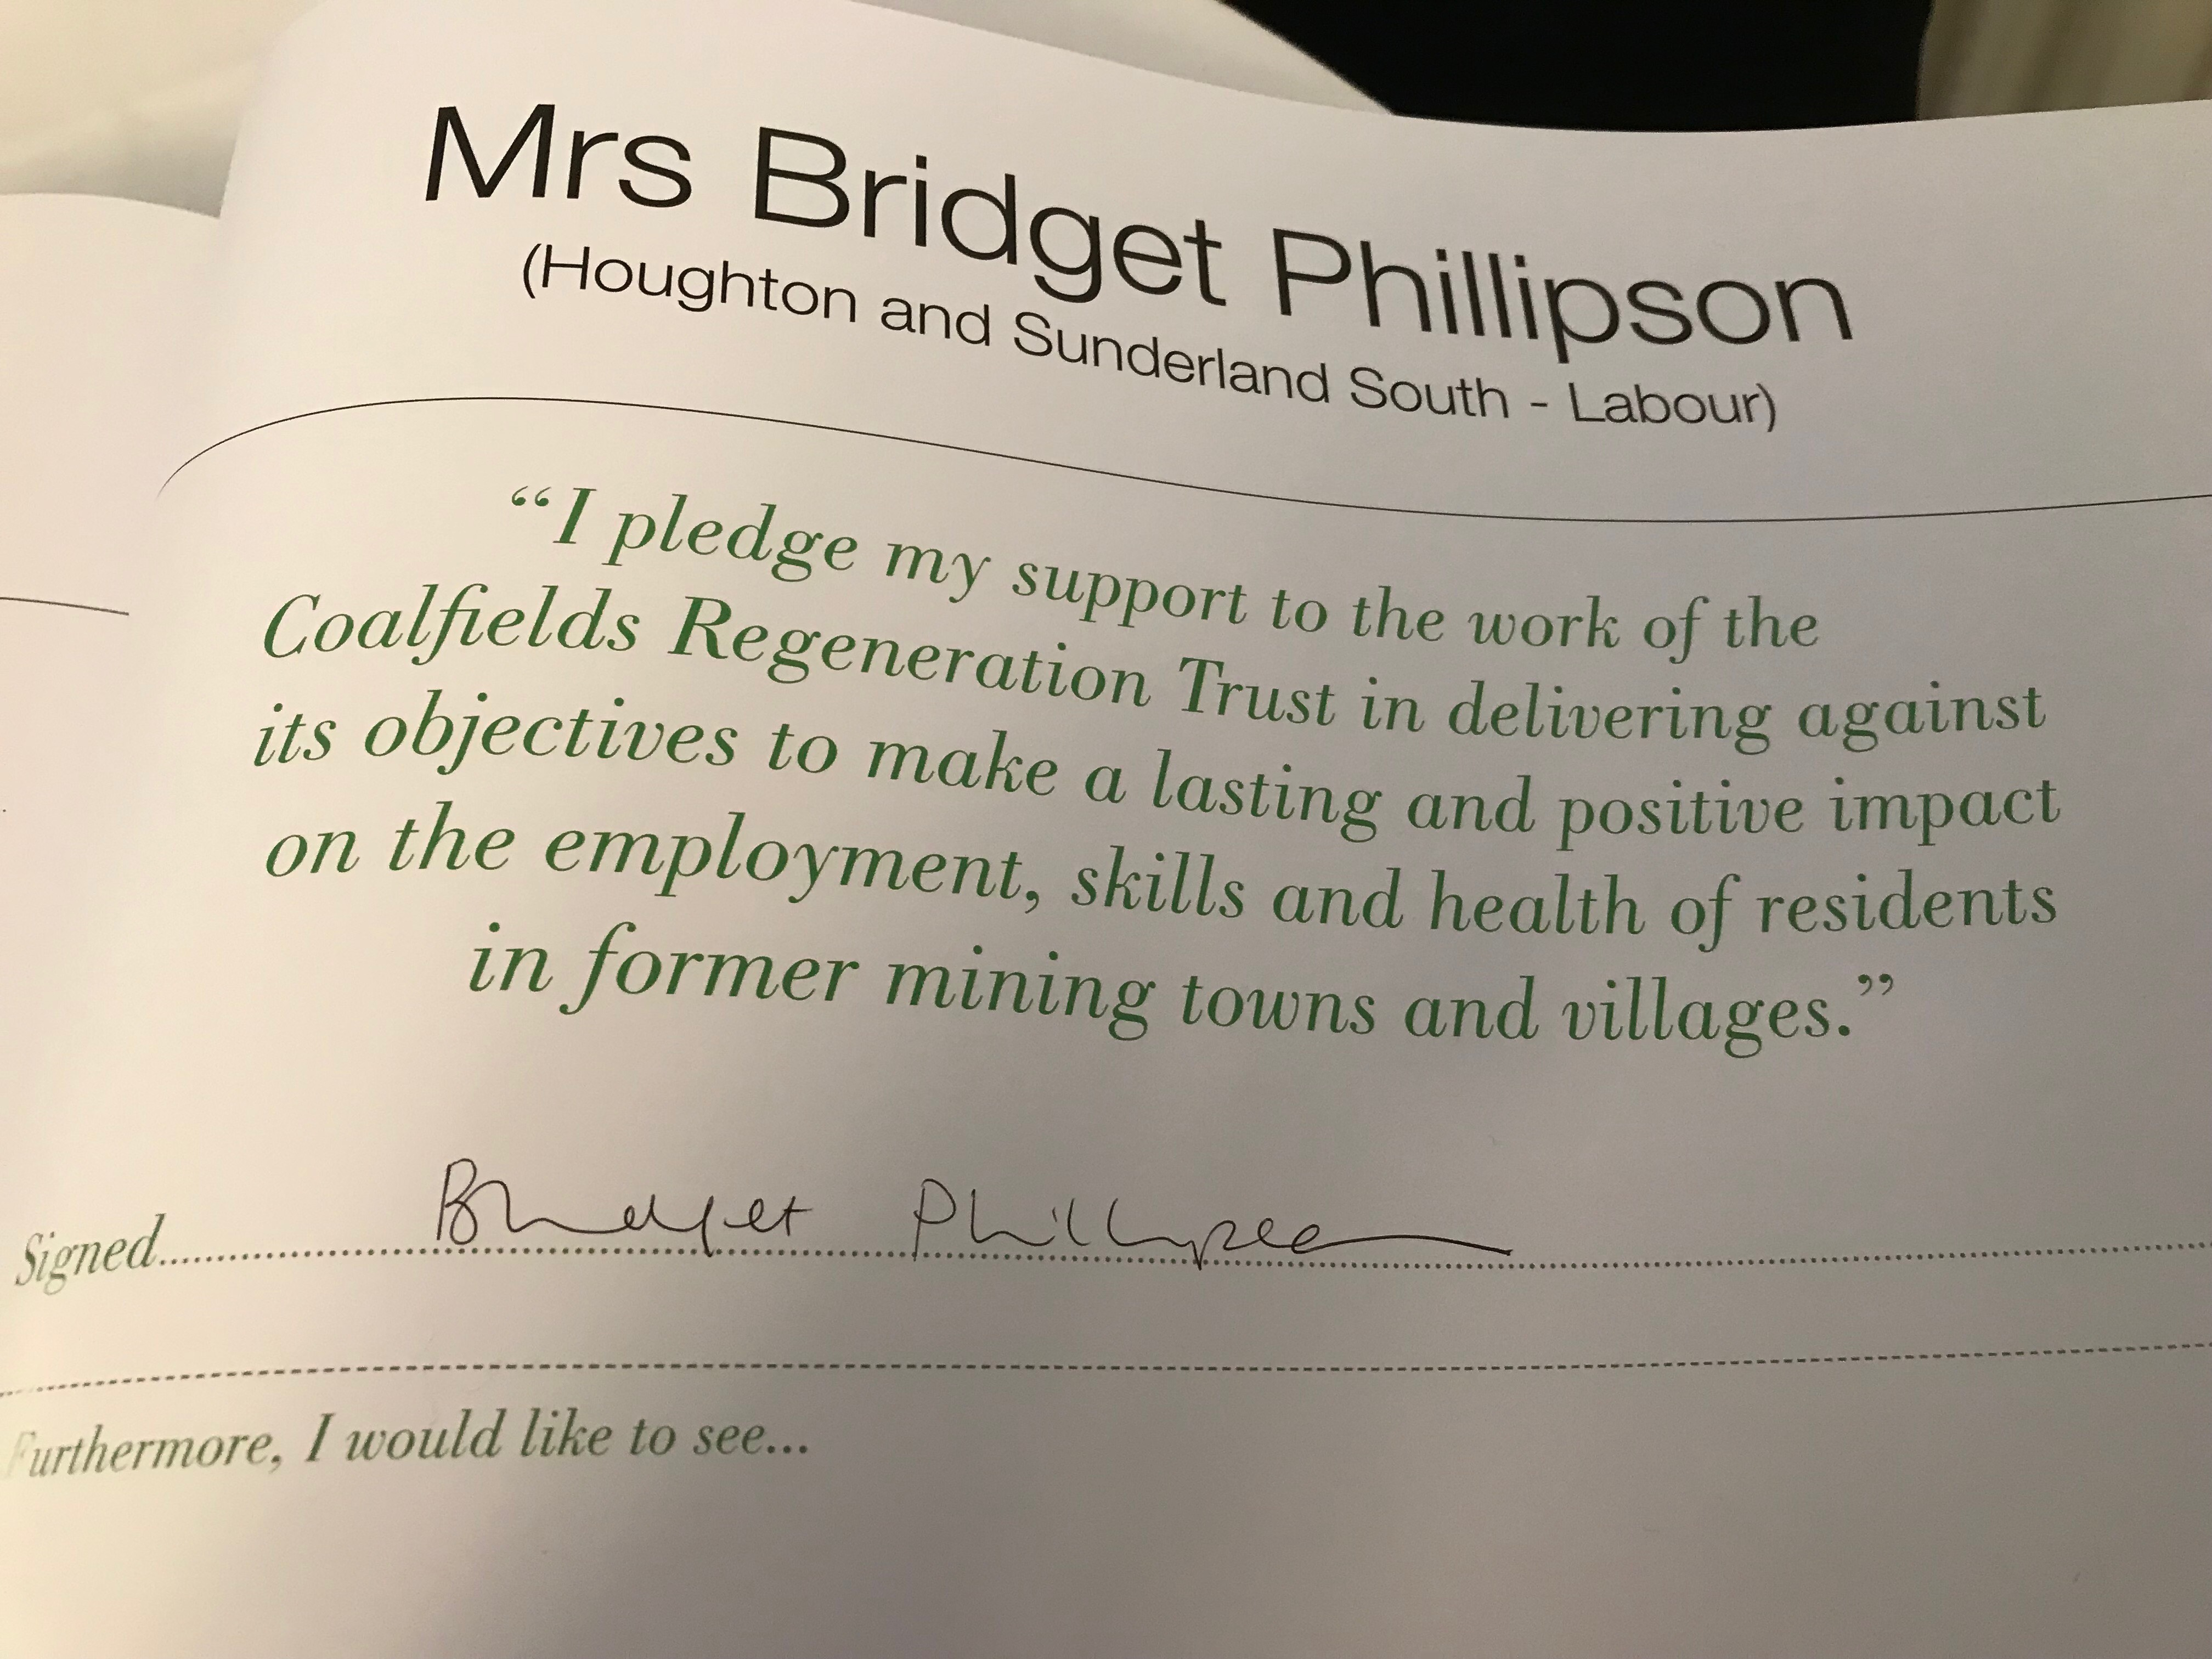 Bridget_Phillipson_MP_Coalfields_Regeneration_Trust_3_27-02-2018.jpeg.jpeg